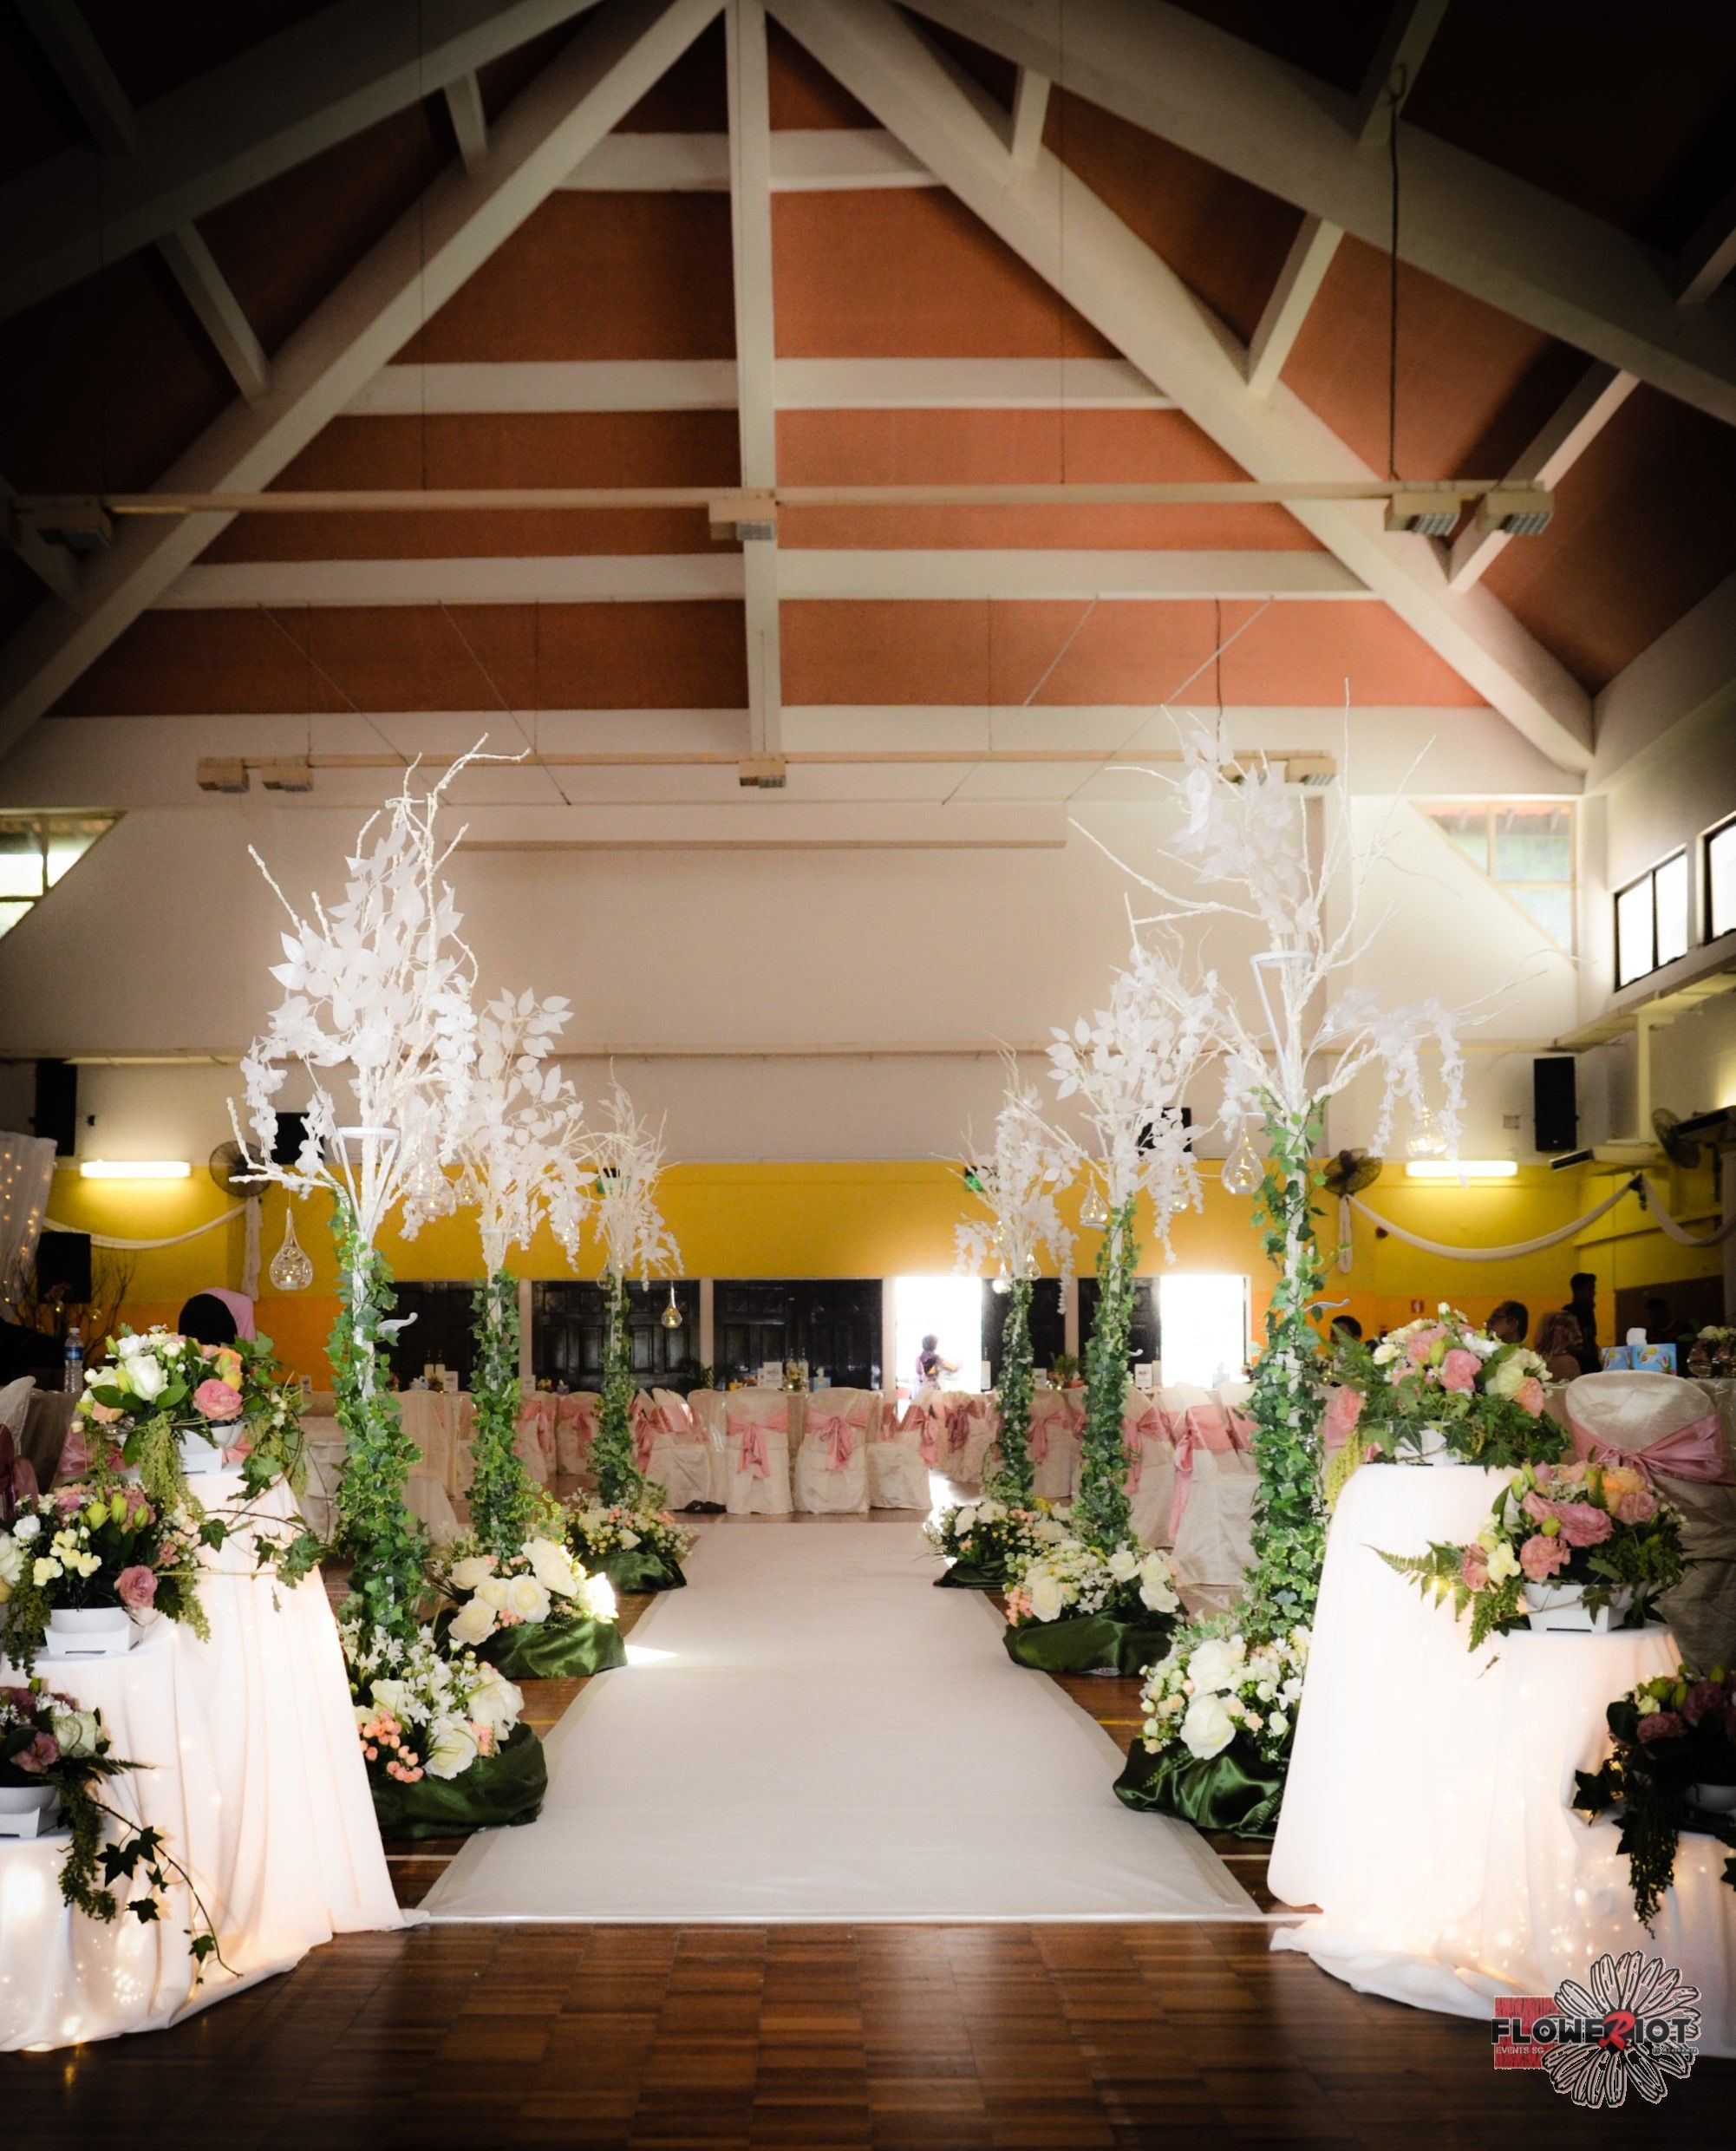 Decoration images for wedding  Surreal garden wedding aisle with white tall trees and floral bases